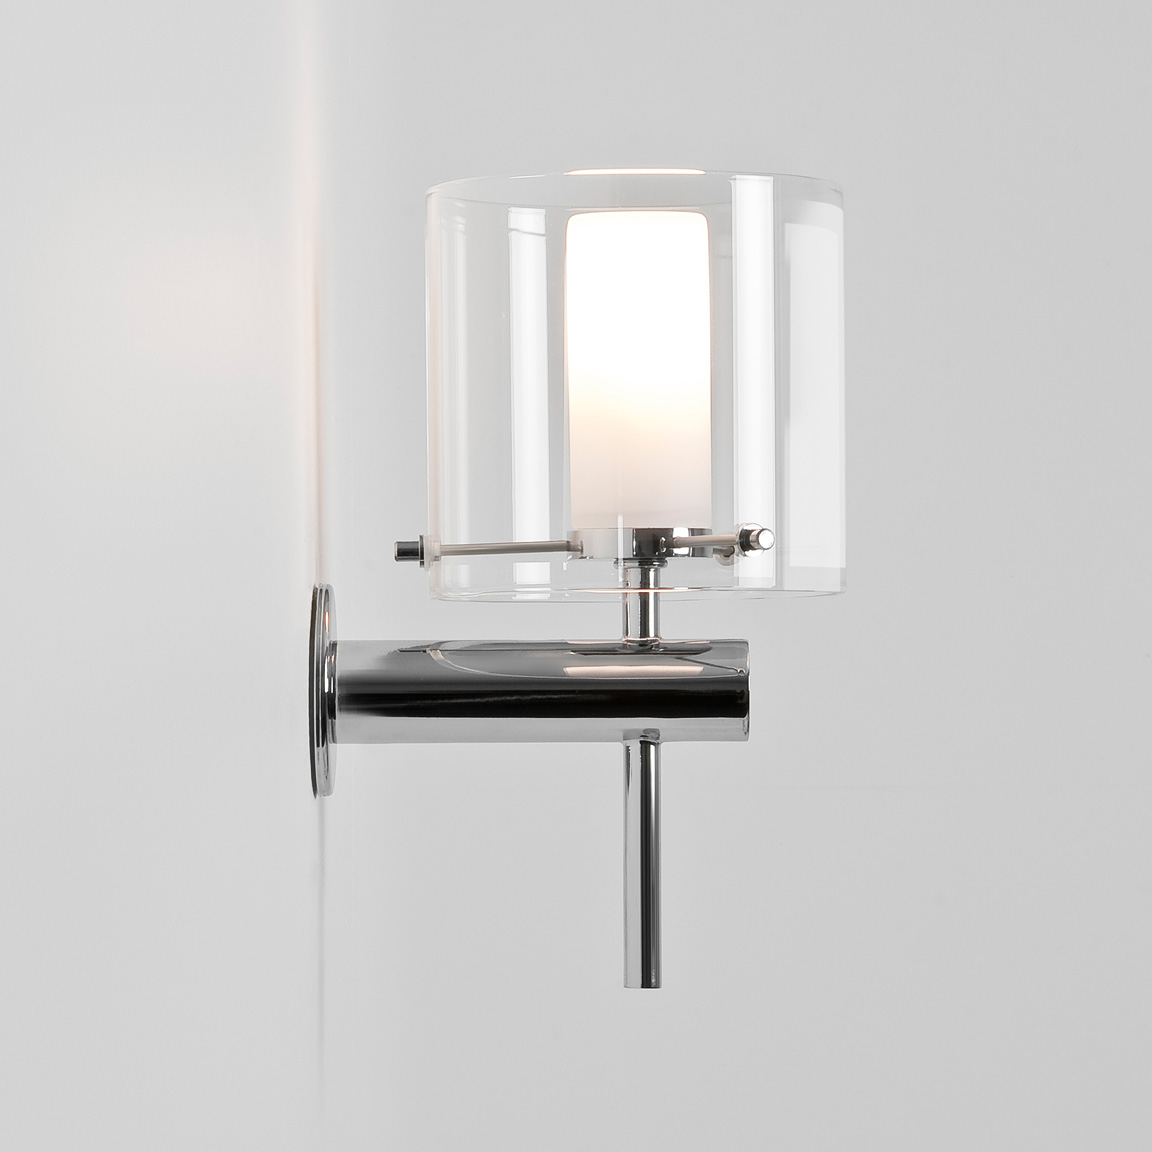 ASTRO Arrezzo 0342 Bathroom wall light 1 x 28W G9 lamp IP44 Chrome Glass shade Thumbnail 2